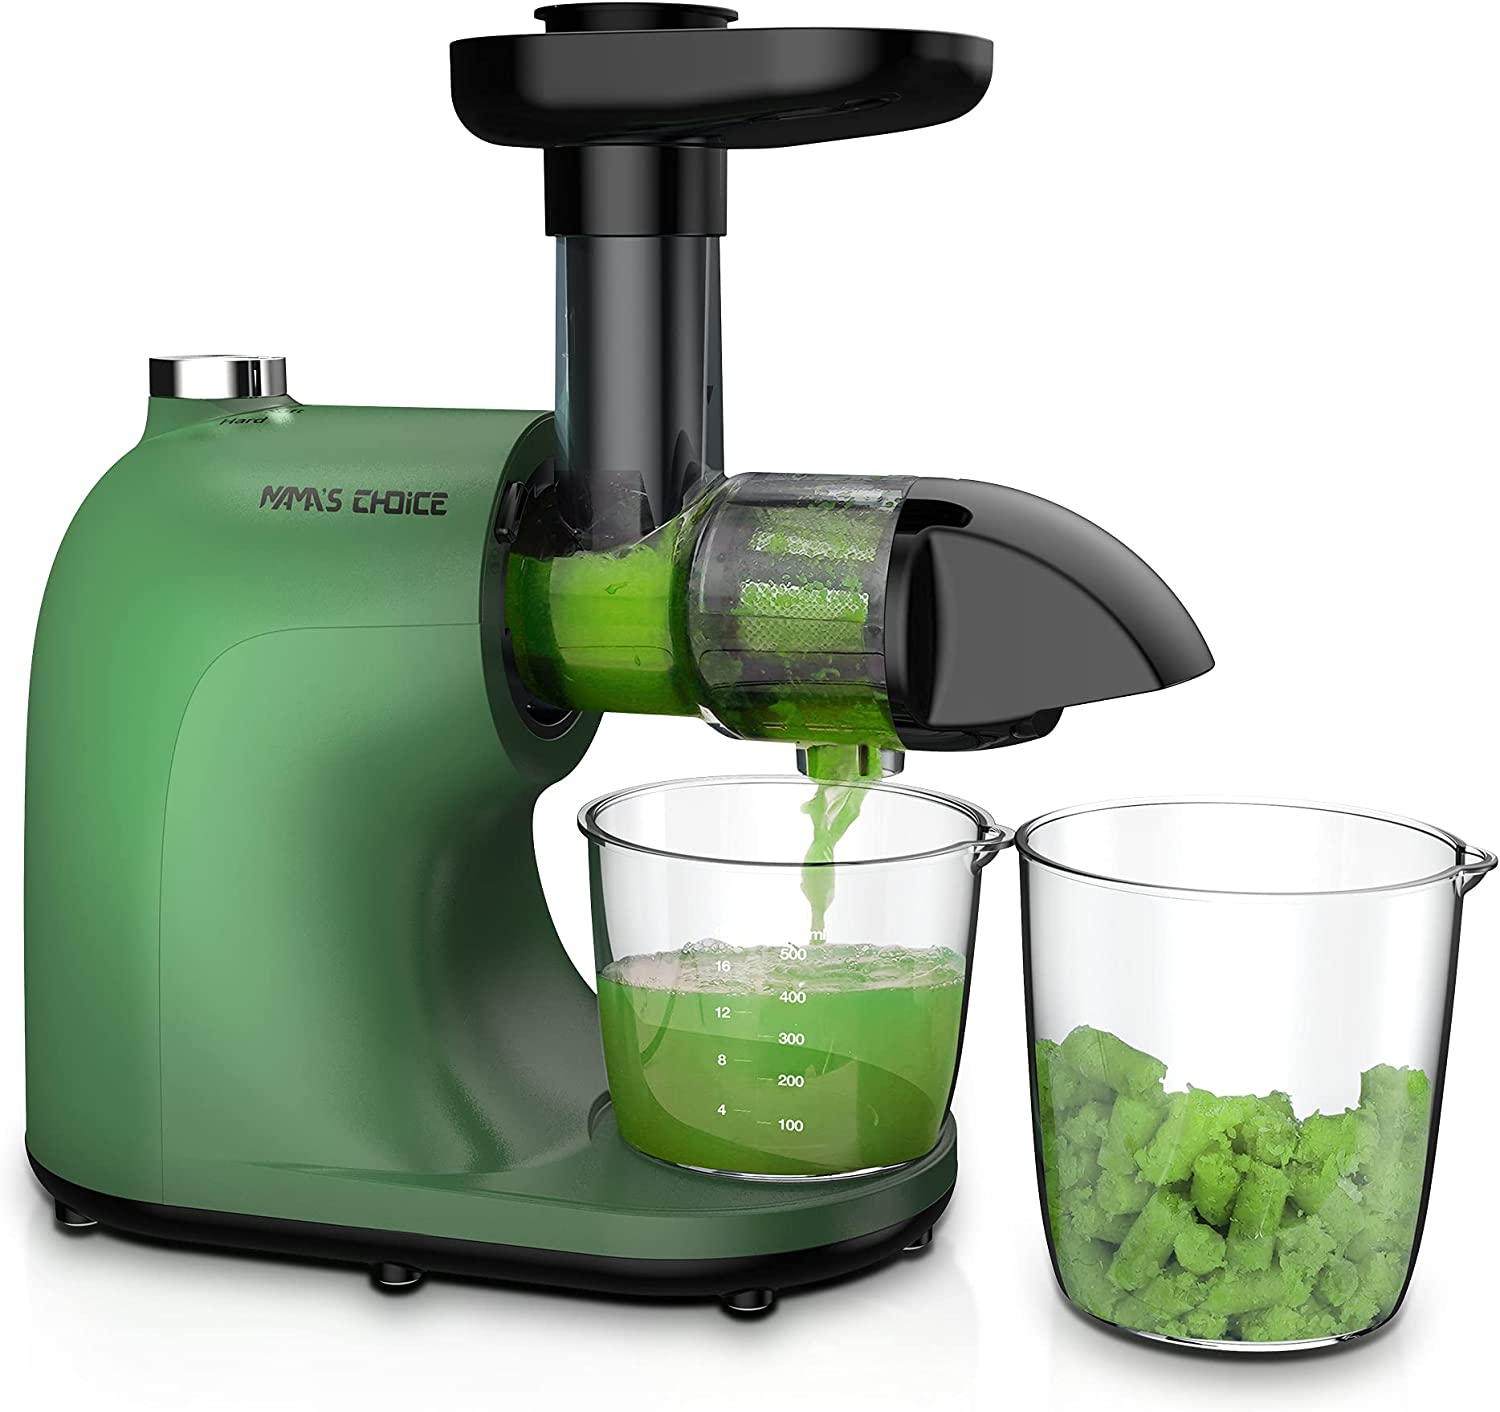 Juicer, Slow Masticating Juicer, Cold Press Juicer Machine, Juice Extractor with Quiet Motor & Hard, Soft, Reverse Functions, Higher Juice Yield & Drier Pulp, BPA-Free, Recipes, Brush, MAMA'S CHOICE